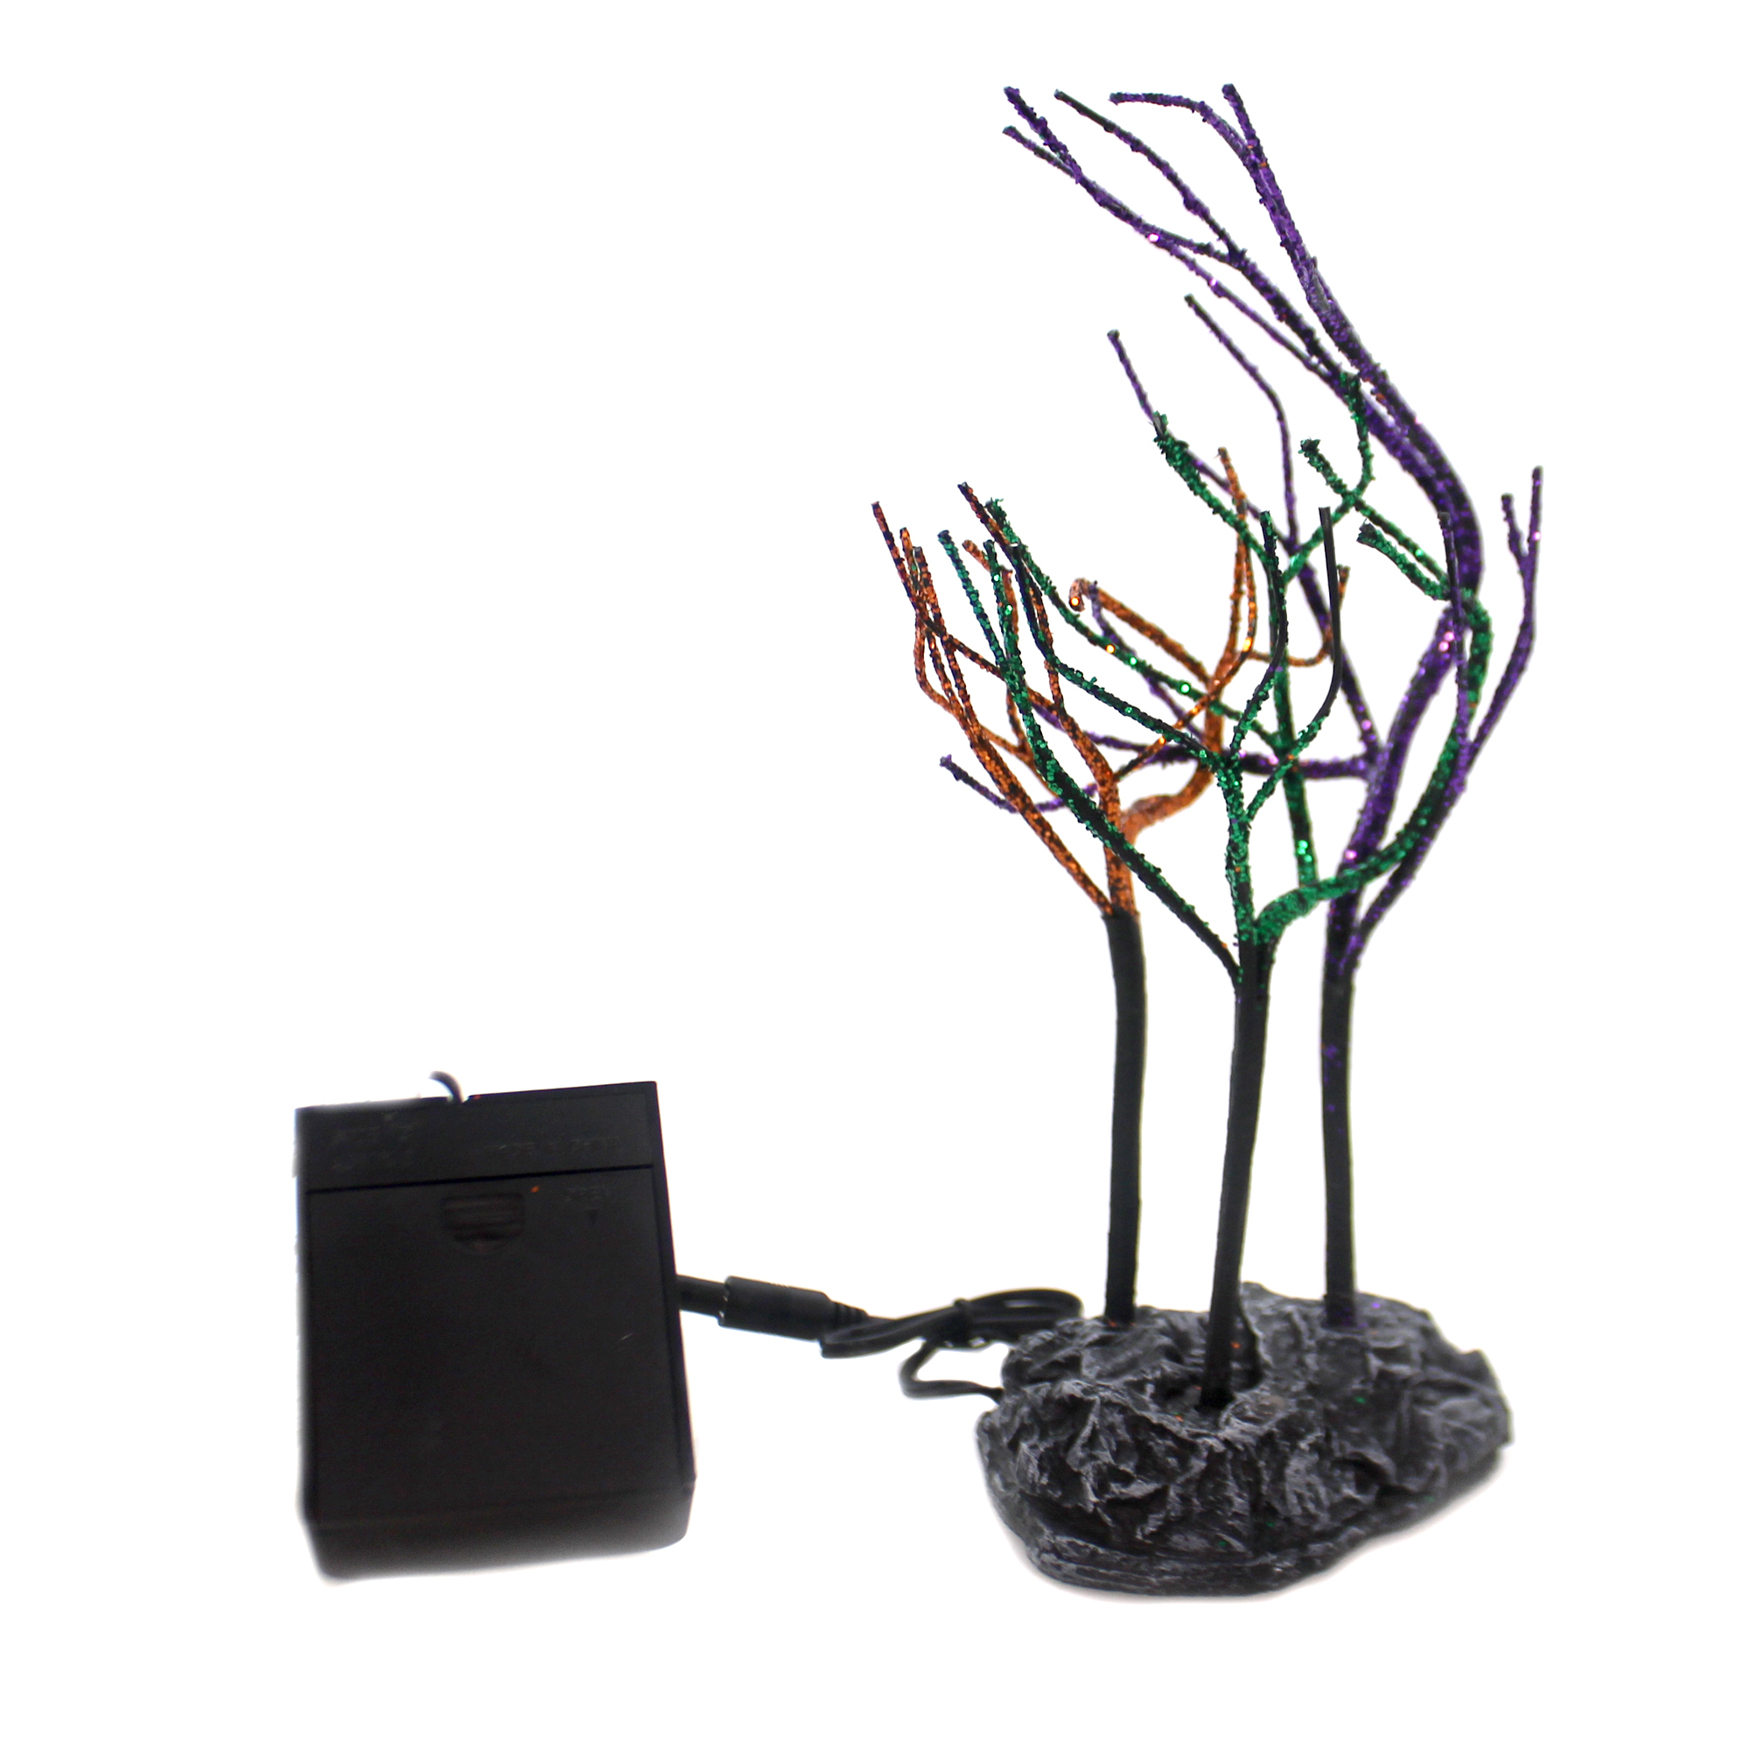 Department 56 Accessory LIT SPOOKY SPARKLE TREES Halloween Village 6001755